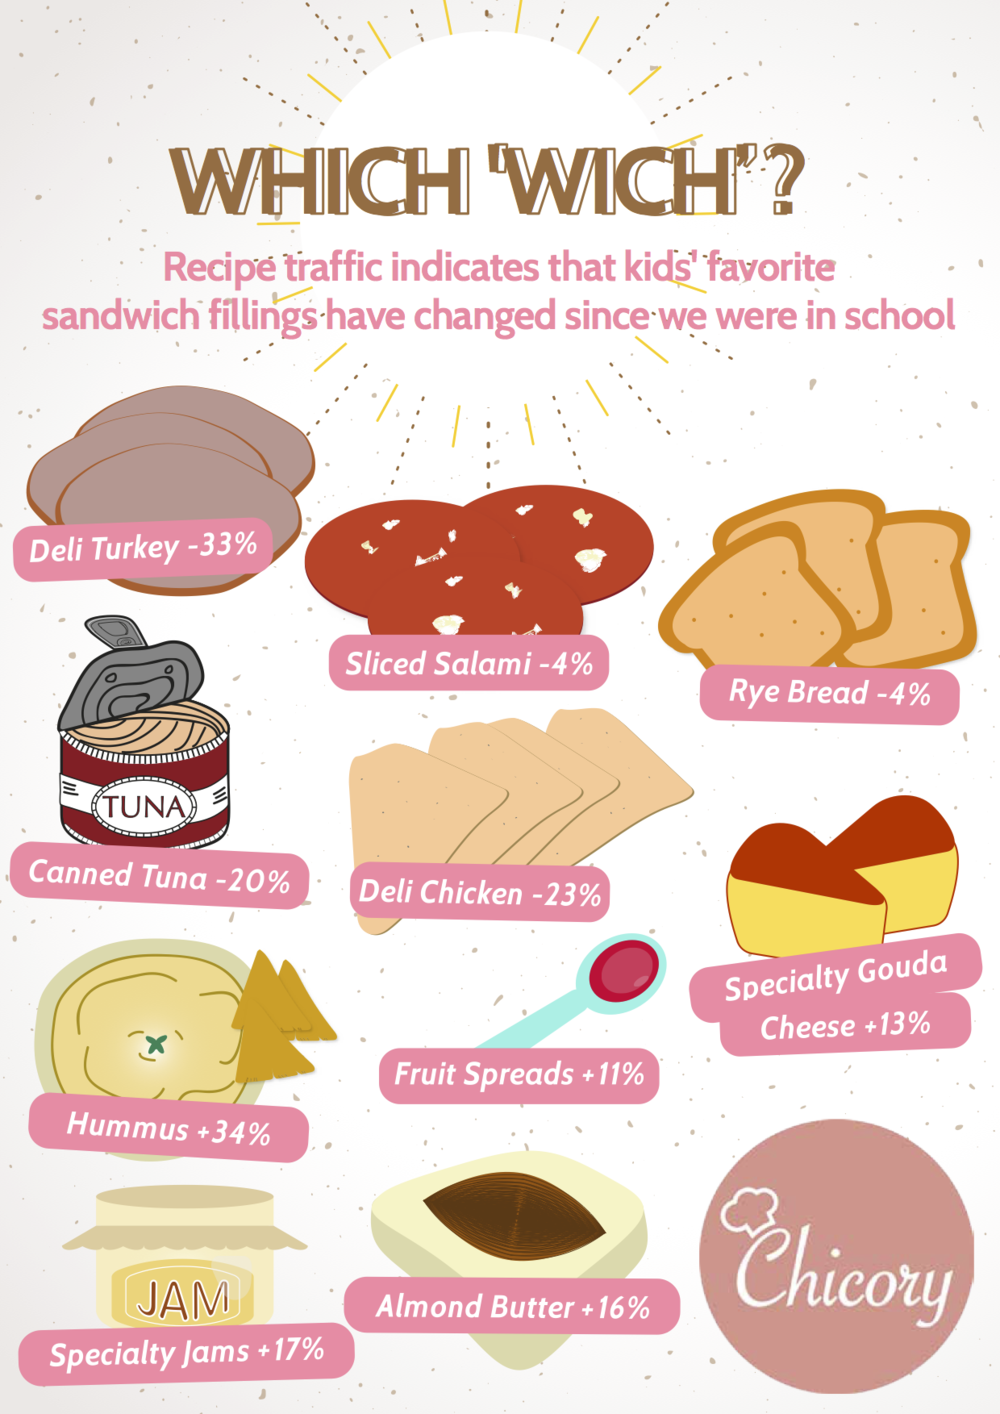 Sandwich Flavor Back to School Trends - Chicory